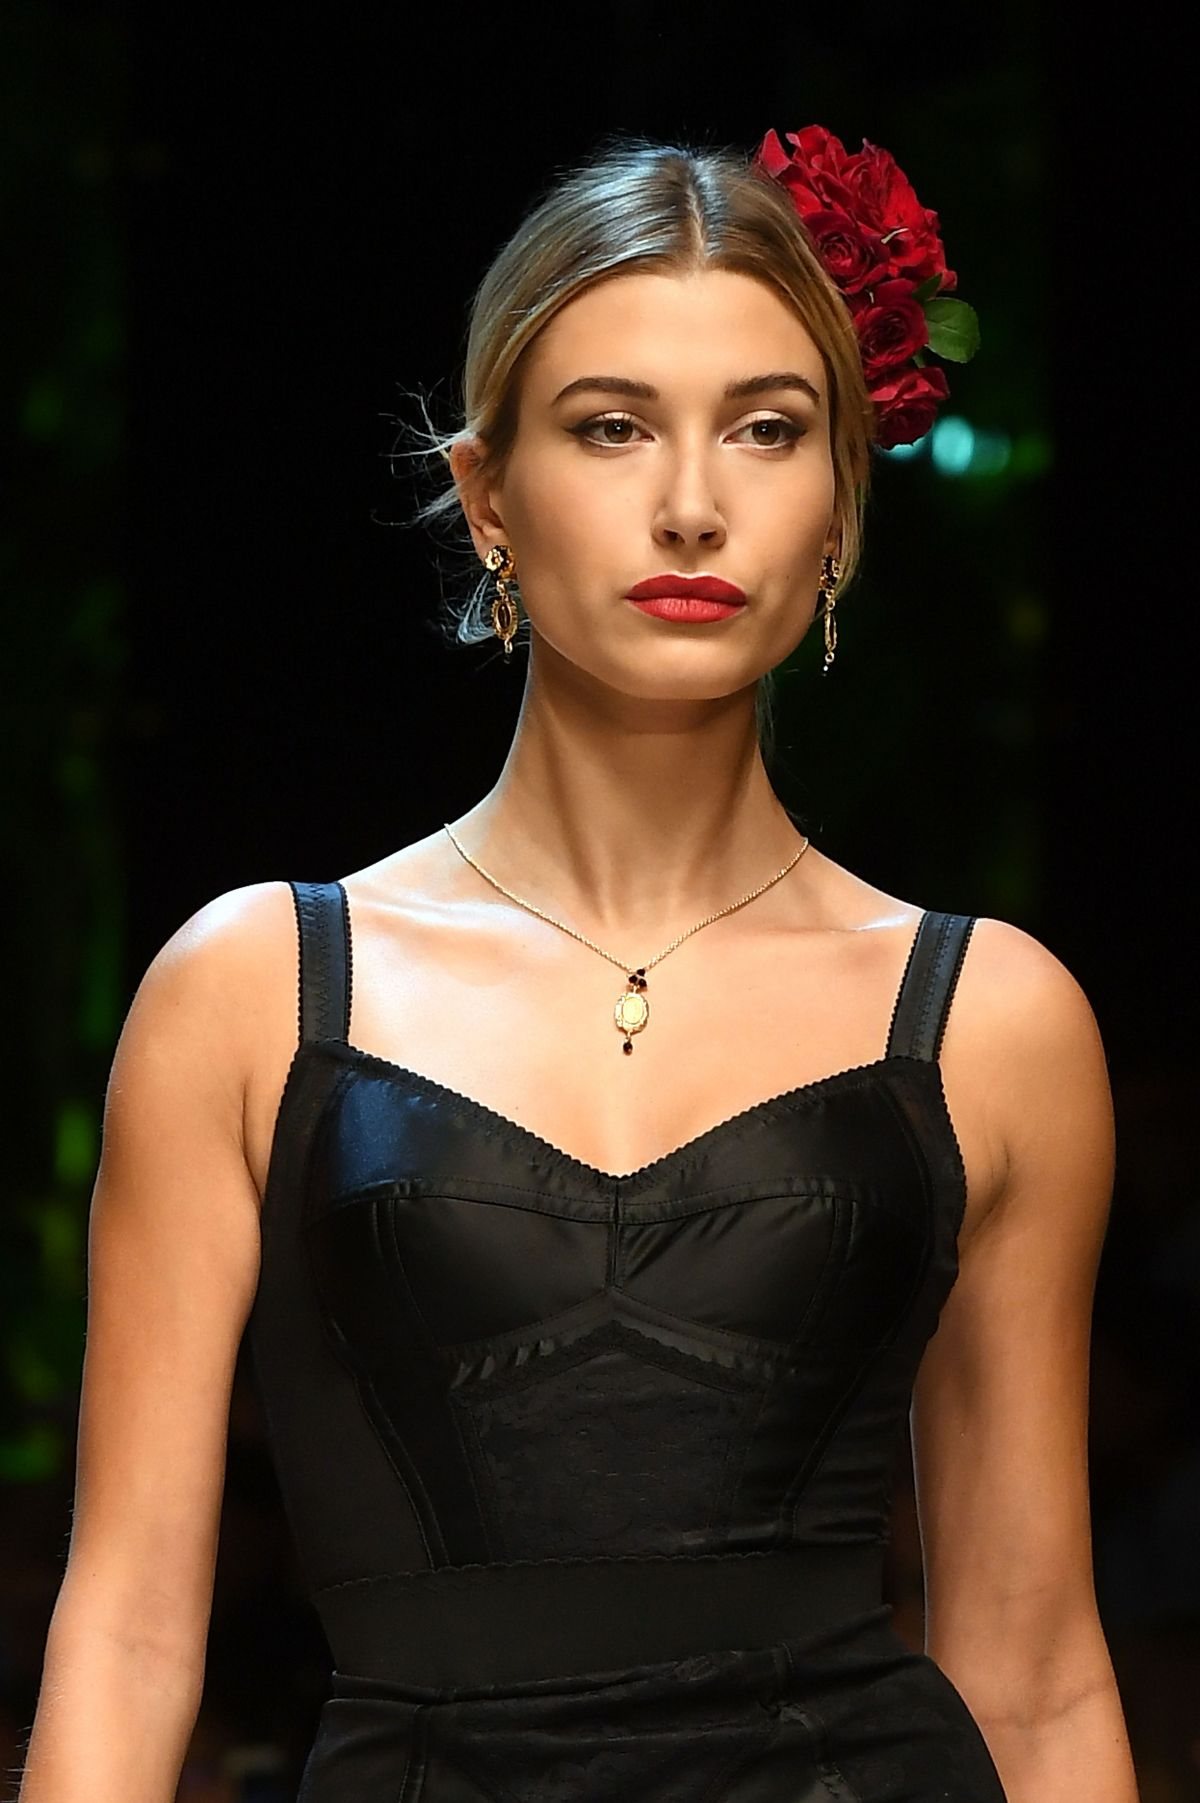 hailey baldwin - photo #42